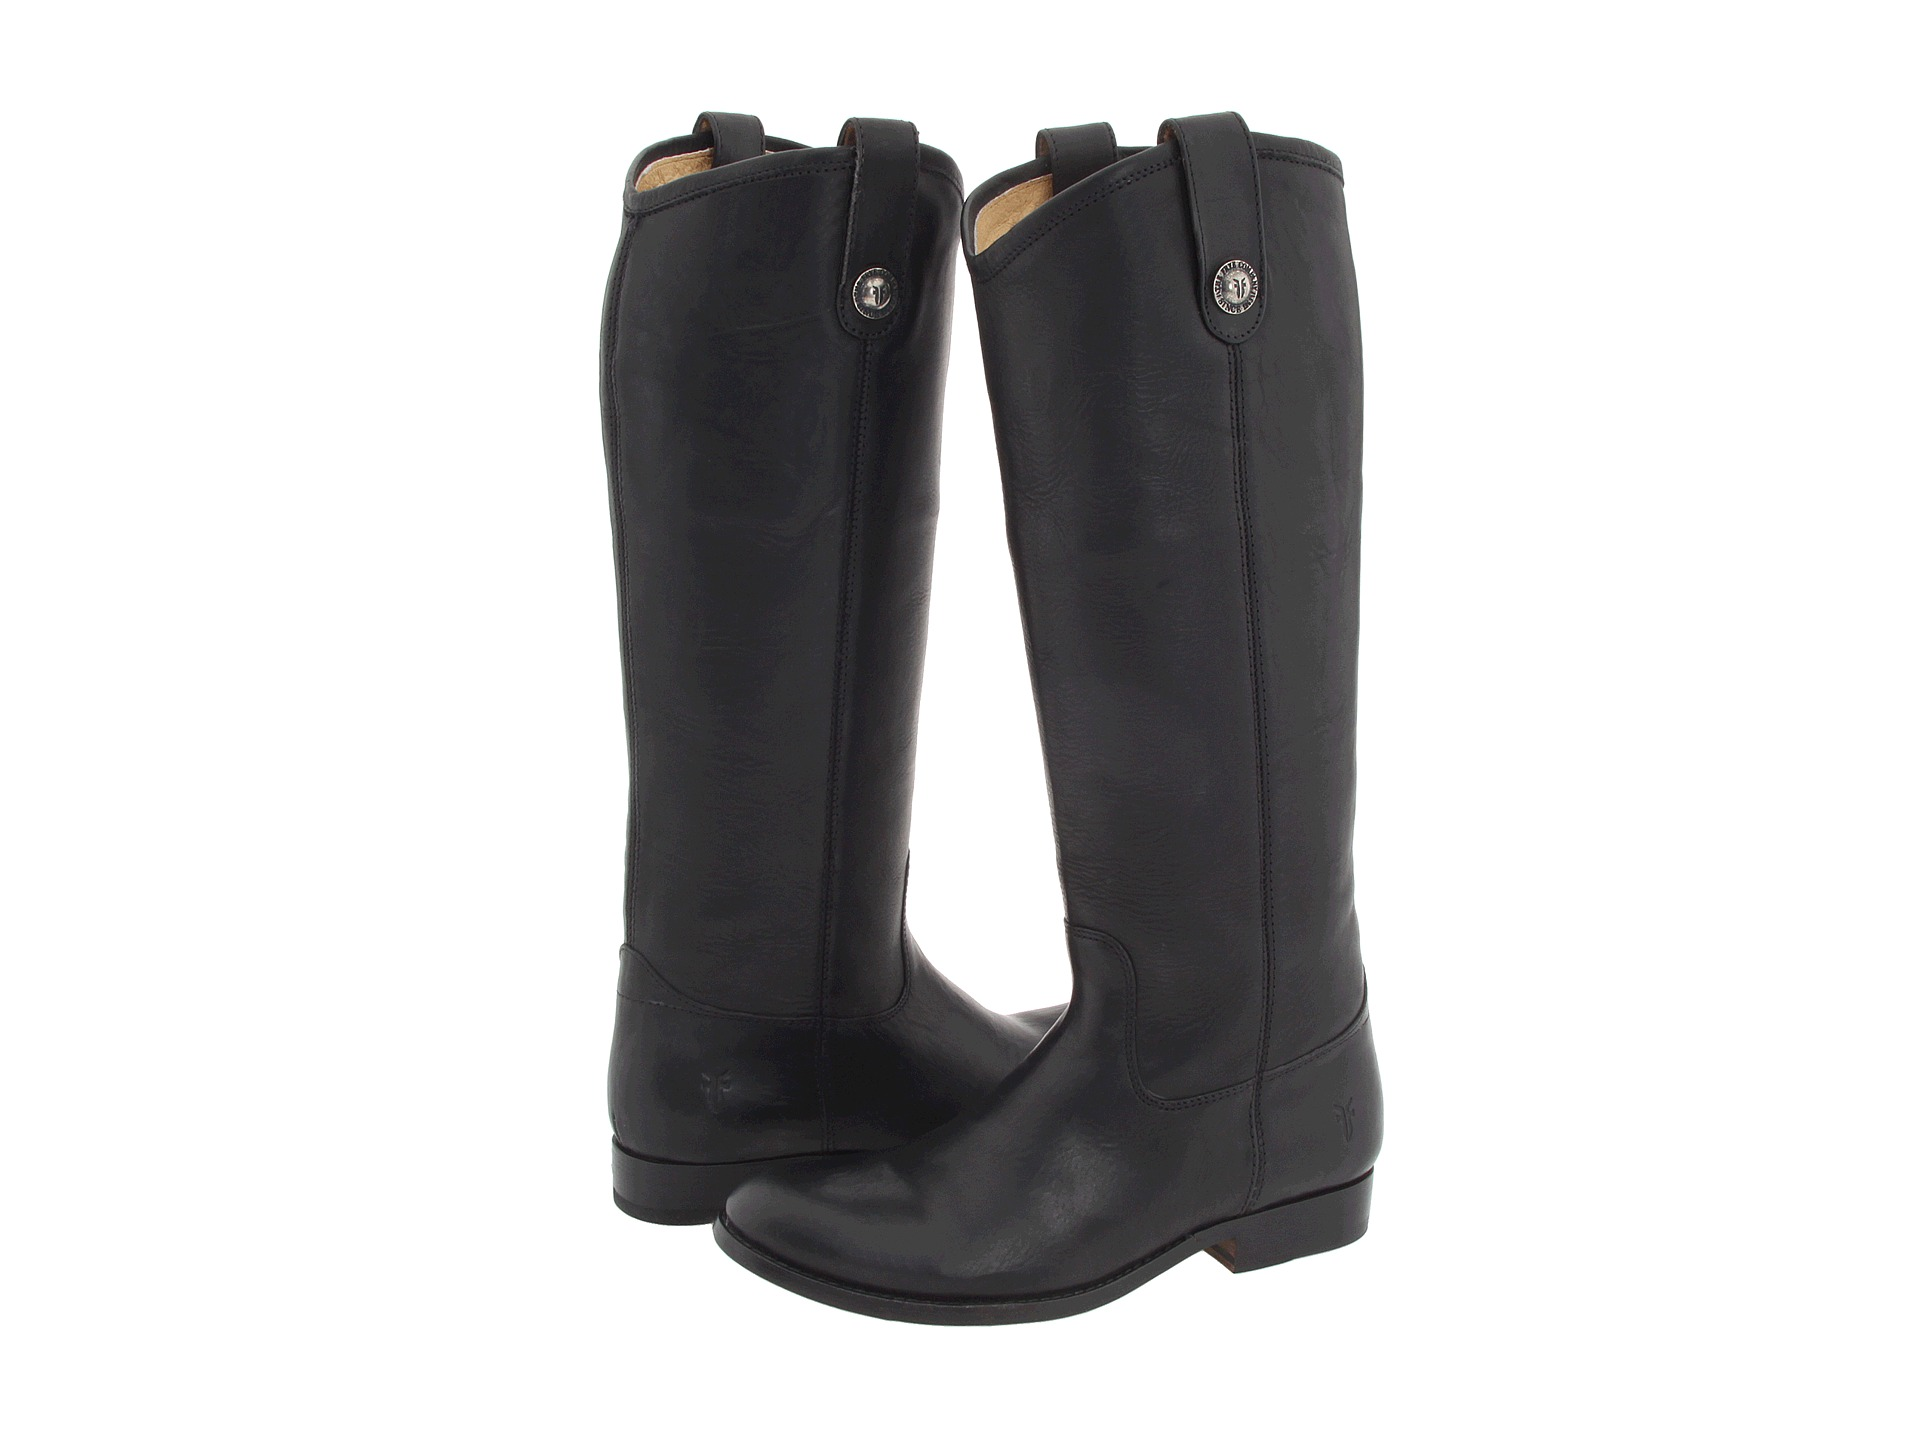 Frye Melissa Button - Zappos.com Free Shipping BOTH Ways